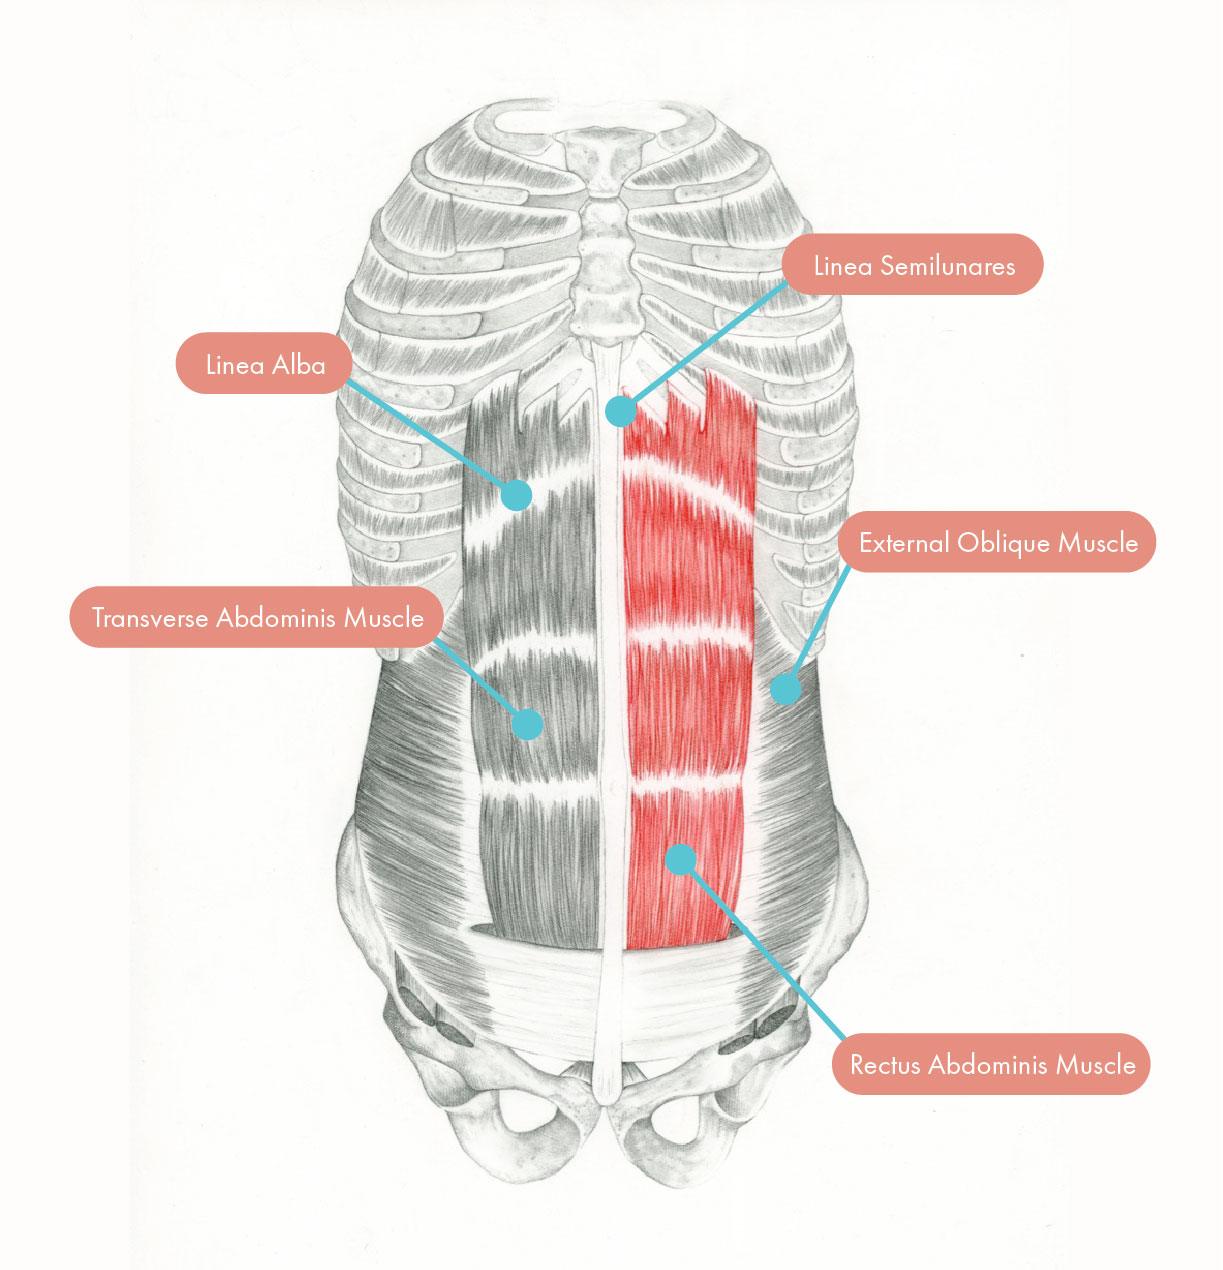 Illustration of the anterior abdominal wall demonstrating the anterior rectus sheath, linea alba, linea semilunares, and the ventral muscles.